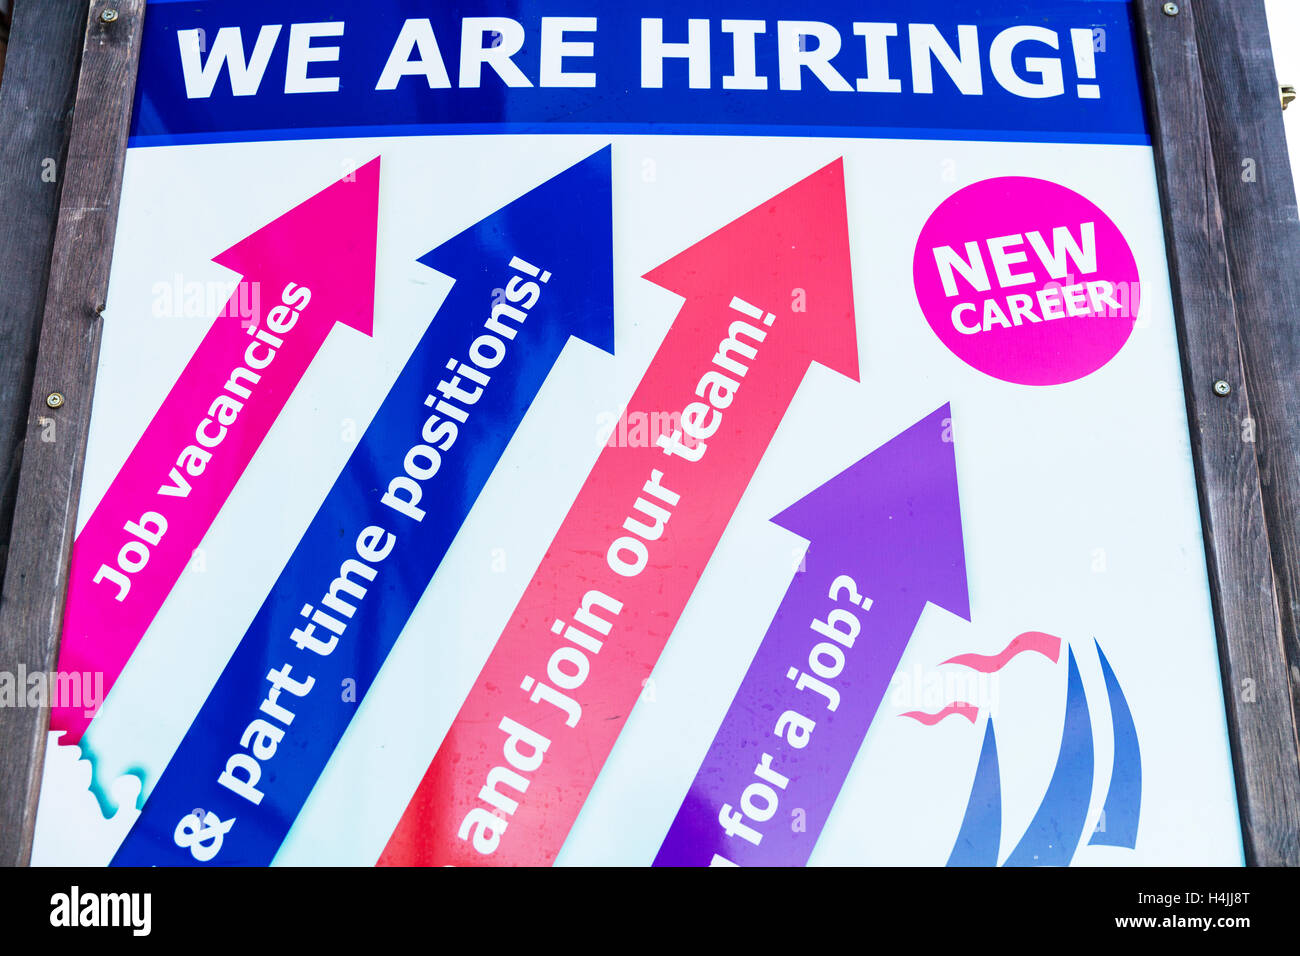 Hiring Jobs job vacancies sign hiring career new jobs employ employment up full or part time vacancy UK England - Stock Image